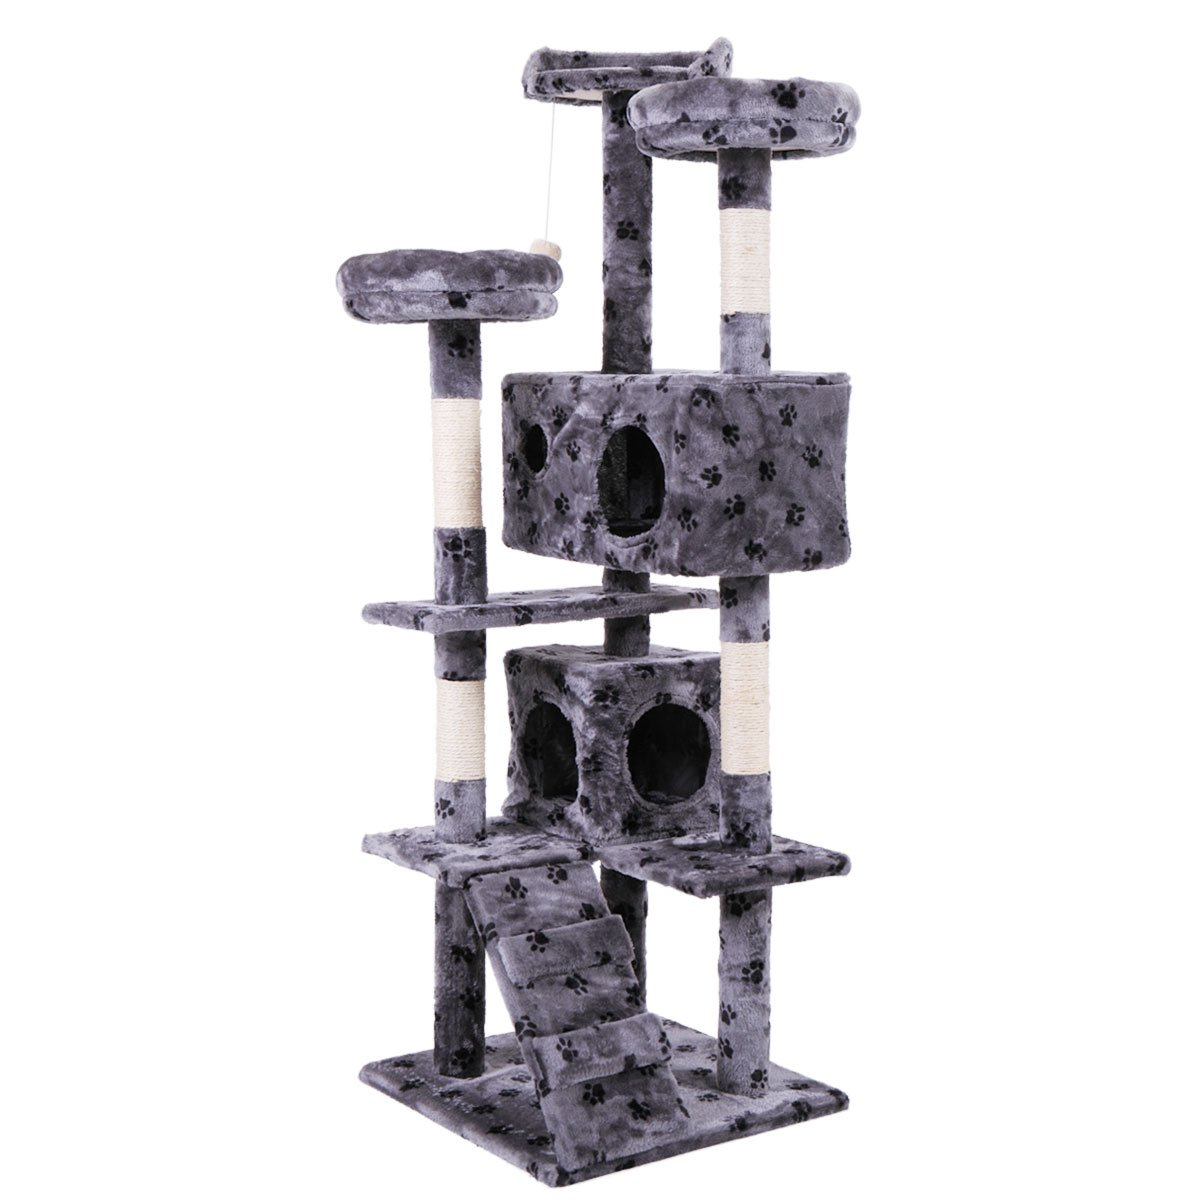 Tobbi 5 Levels Cat Tower Tree House Kitty Scratcher Play House Furniture W/Toys